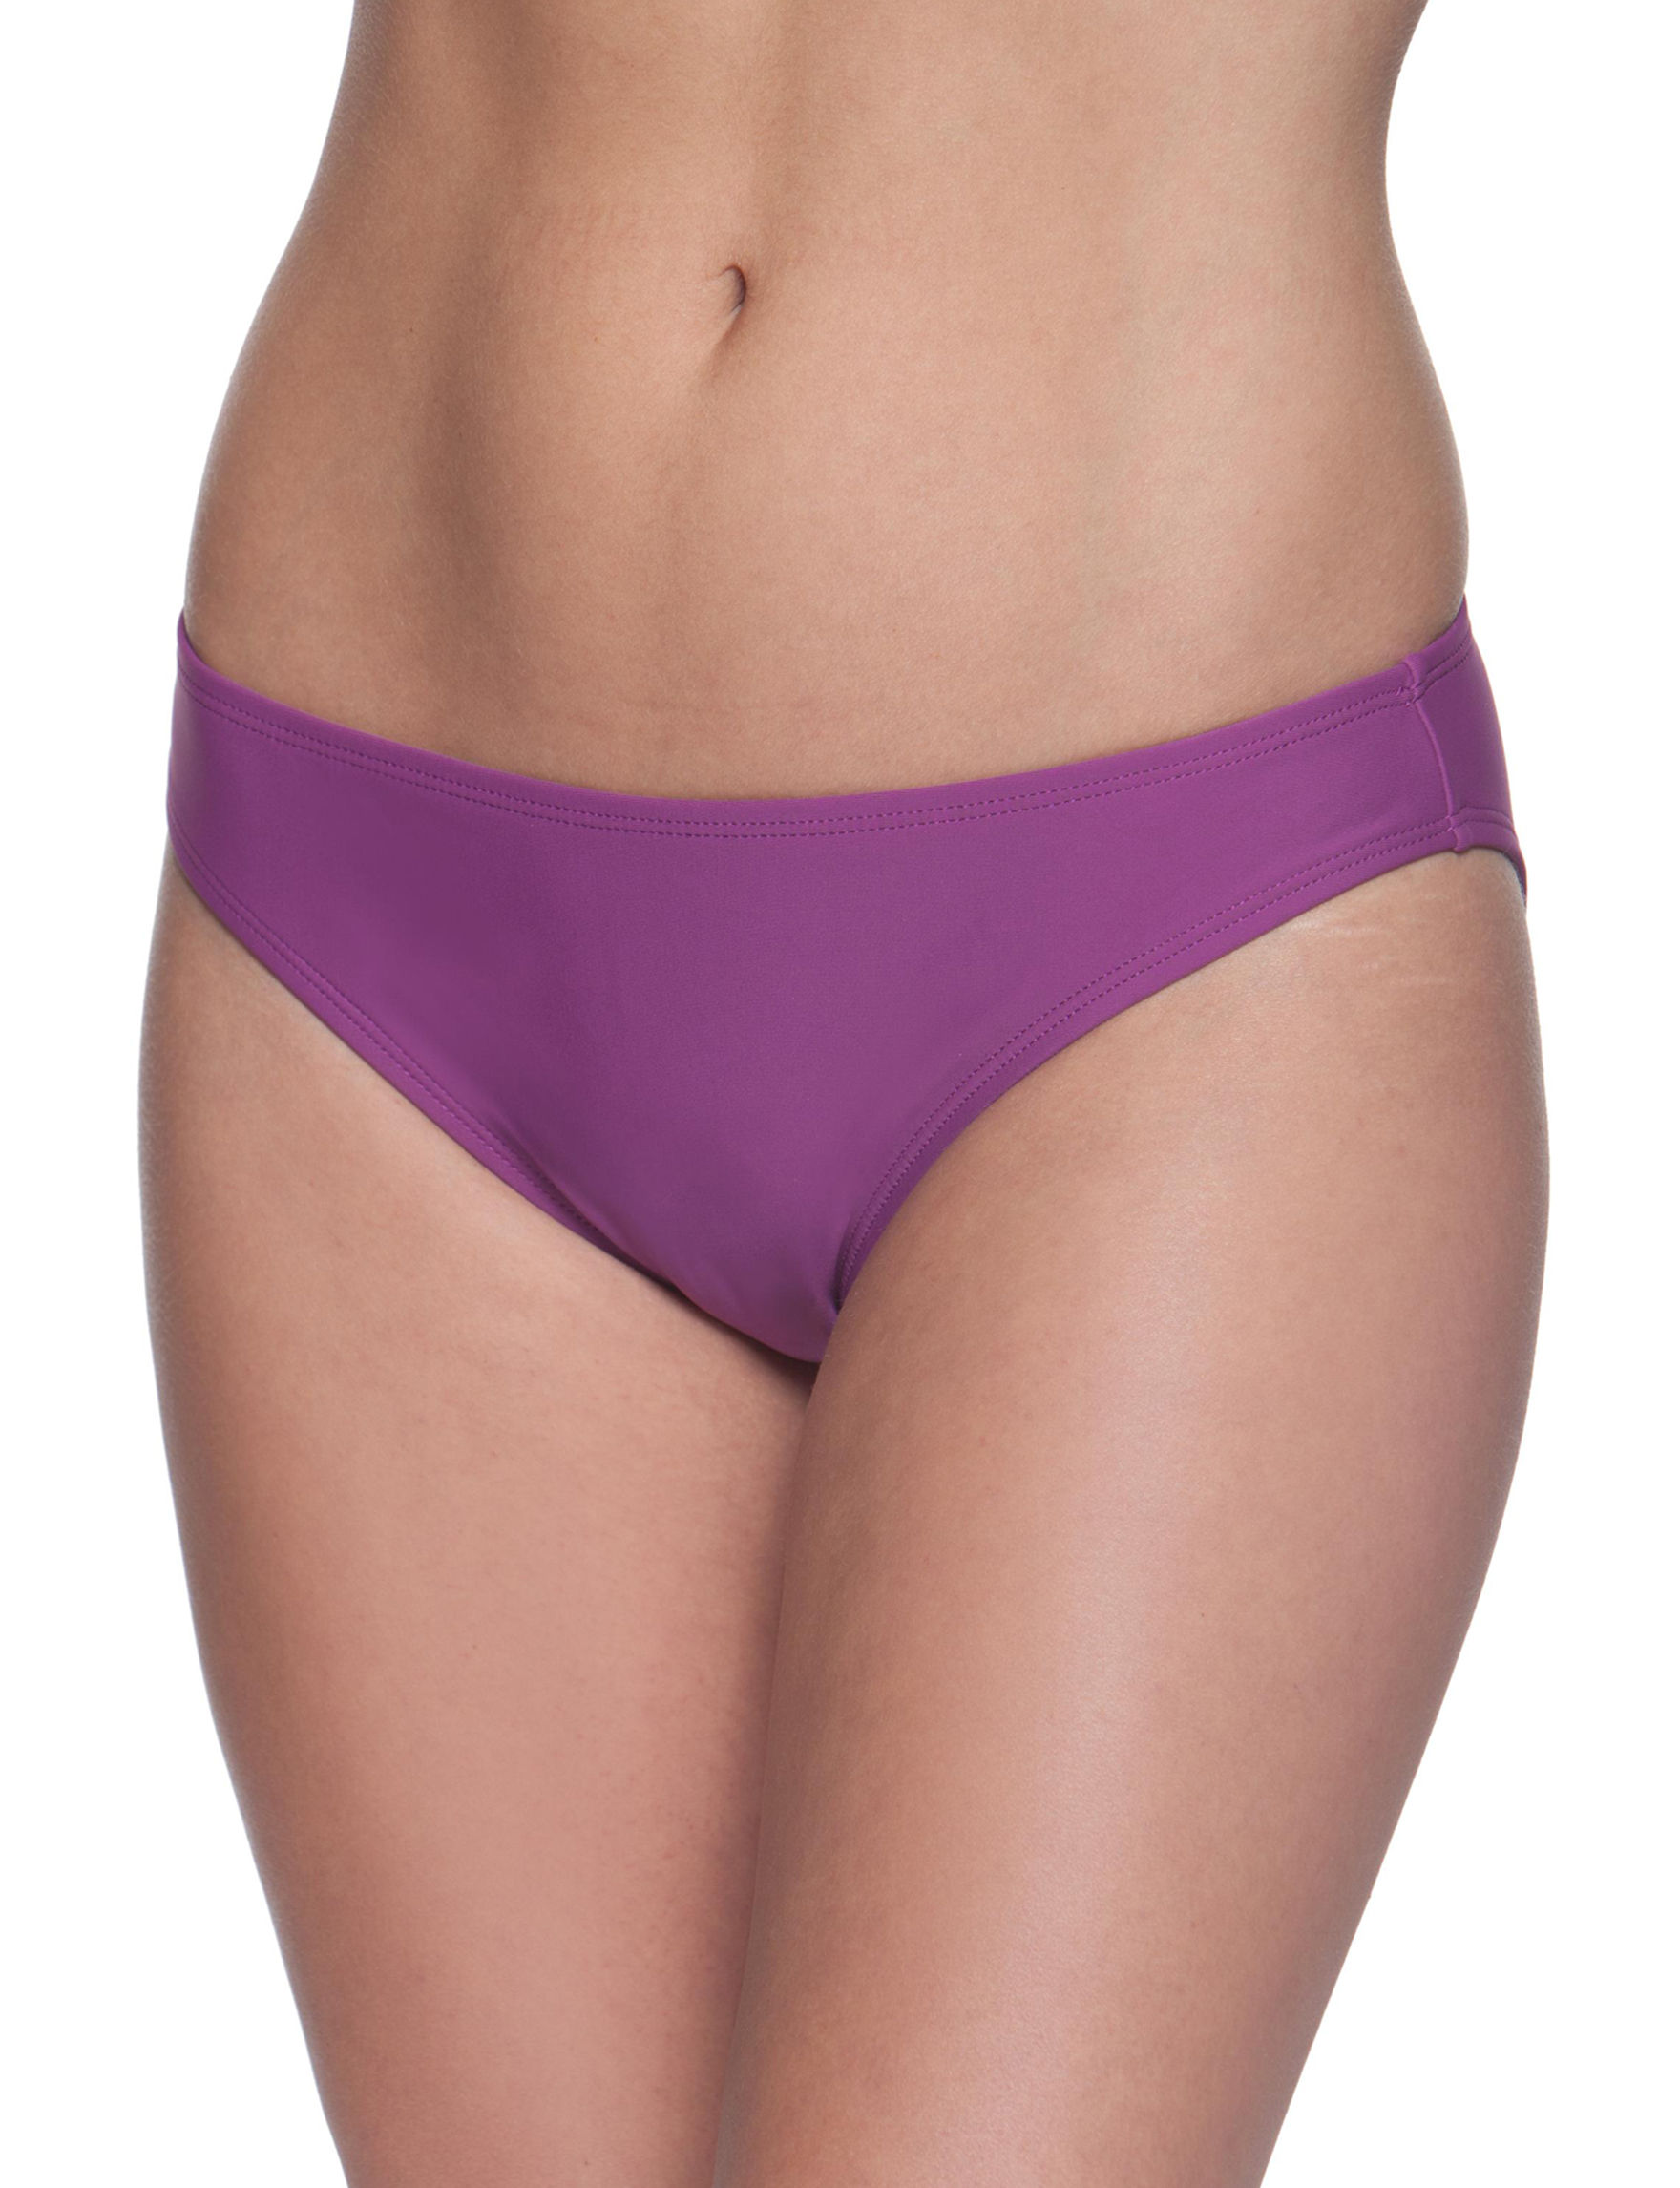 Gossip Pink Swimsuit Bottoms Hipster